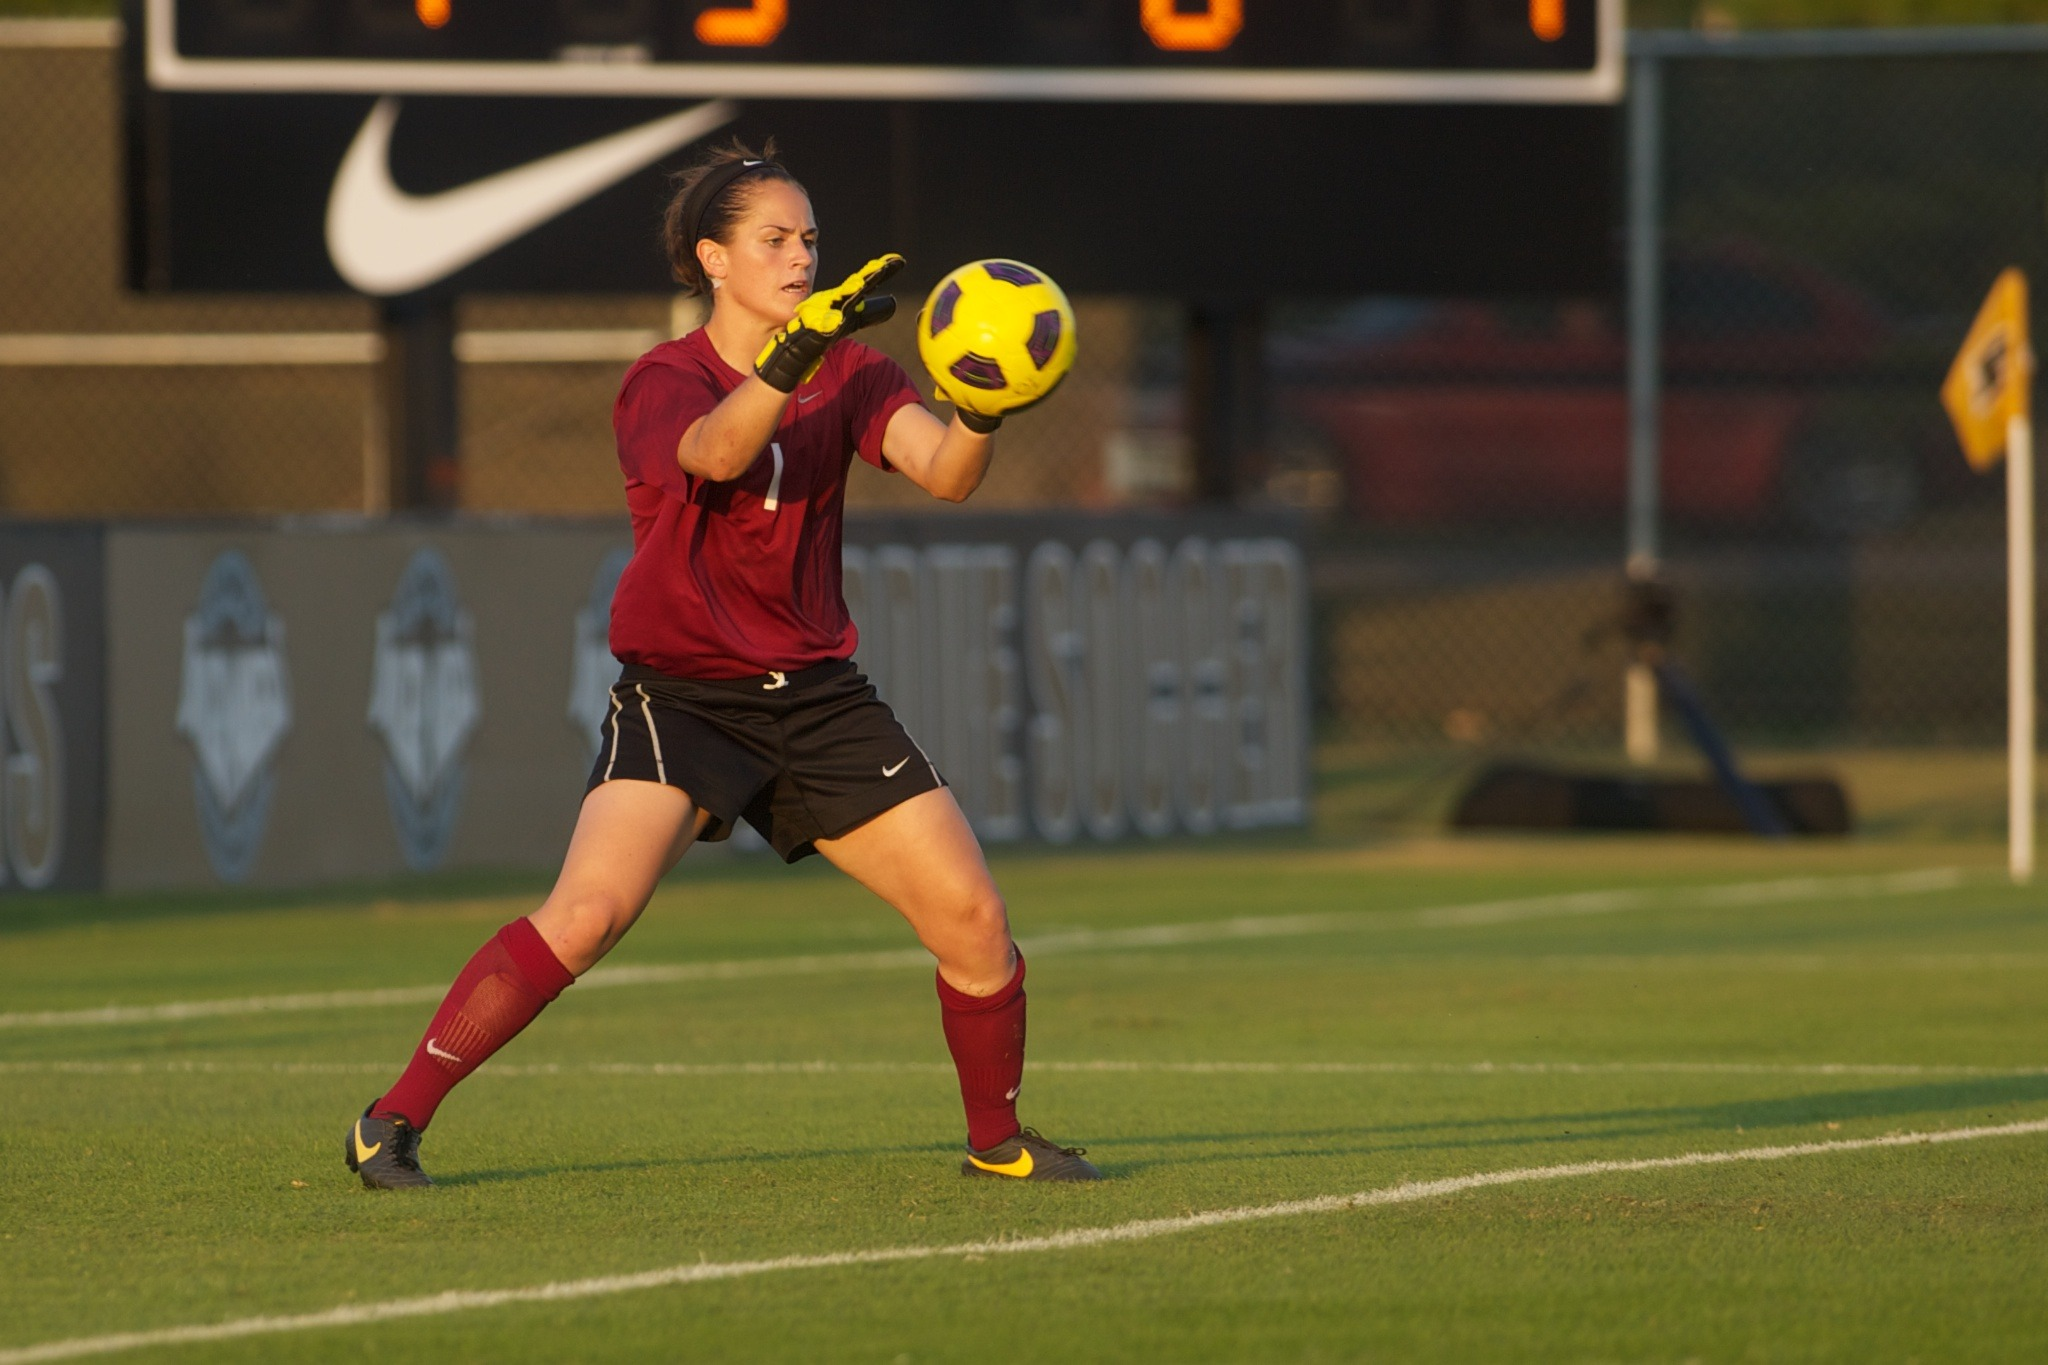 Goalkeeper Jordan Ginther made a career-high eight saves in the loss.